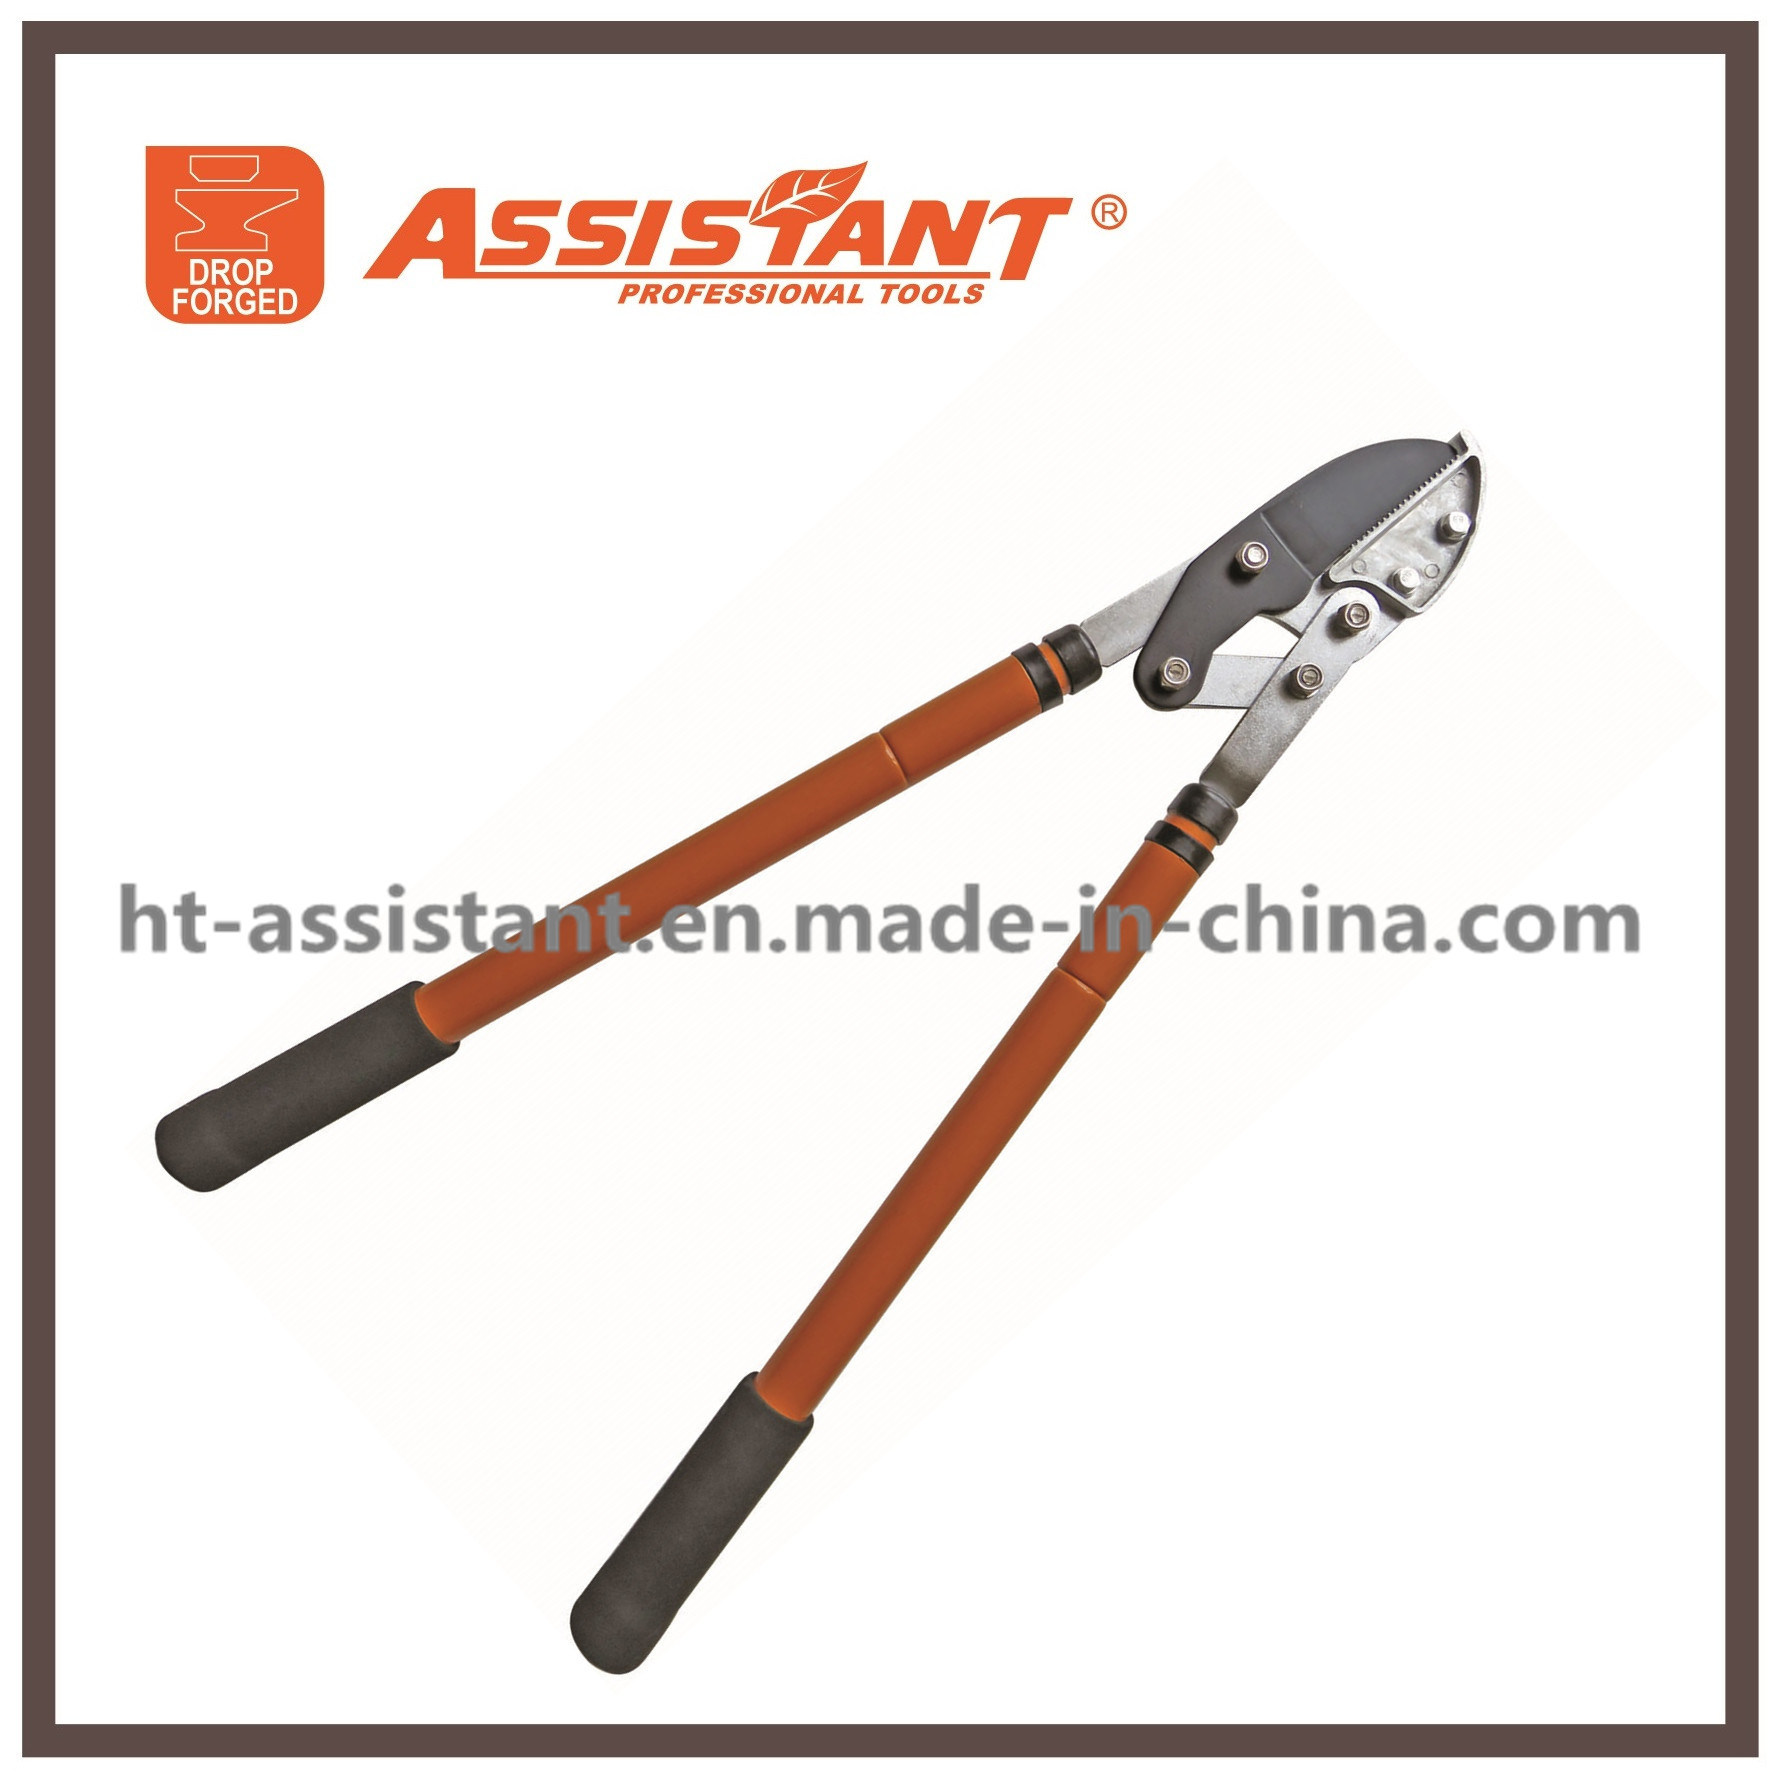 PTFE Coated Garden Lopping Shears Tree Clippers Extendable Anvil Loppers